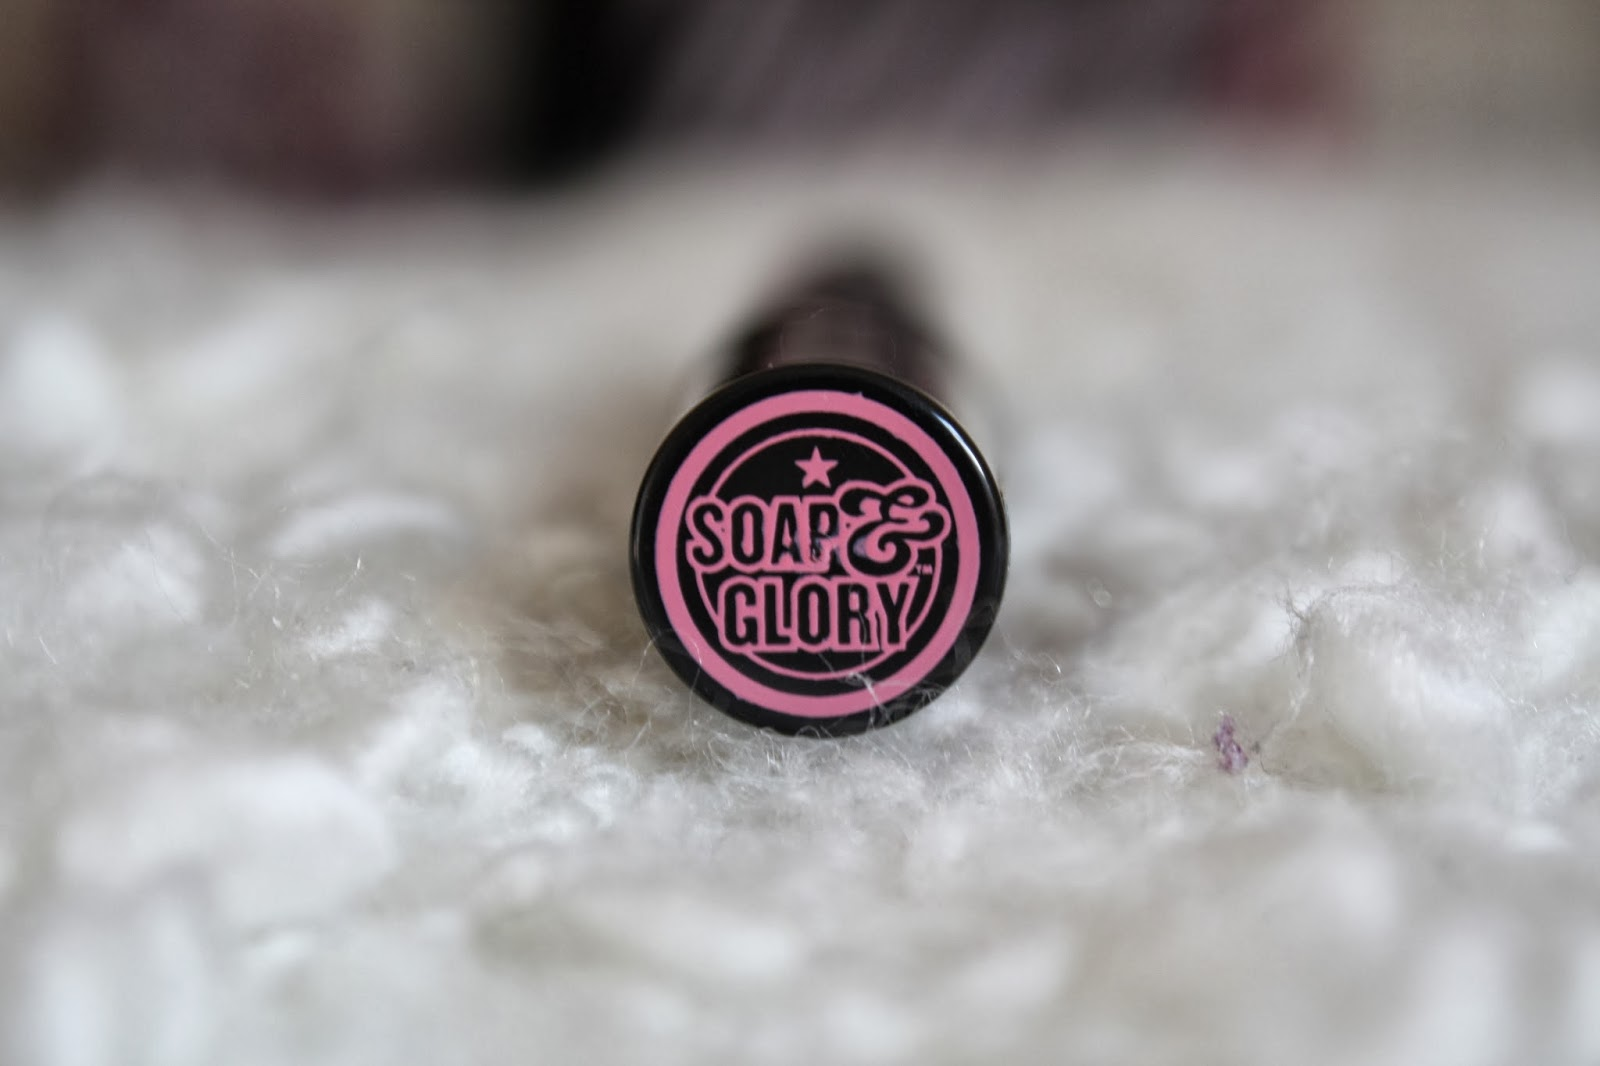 Soap & Glory Thick and Fast Mascara